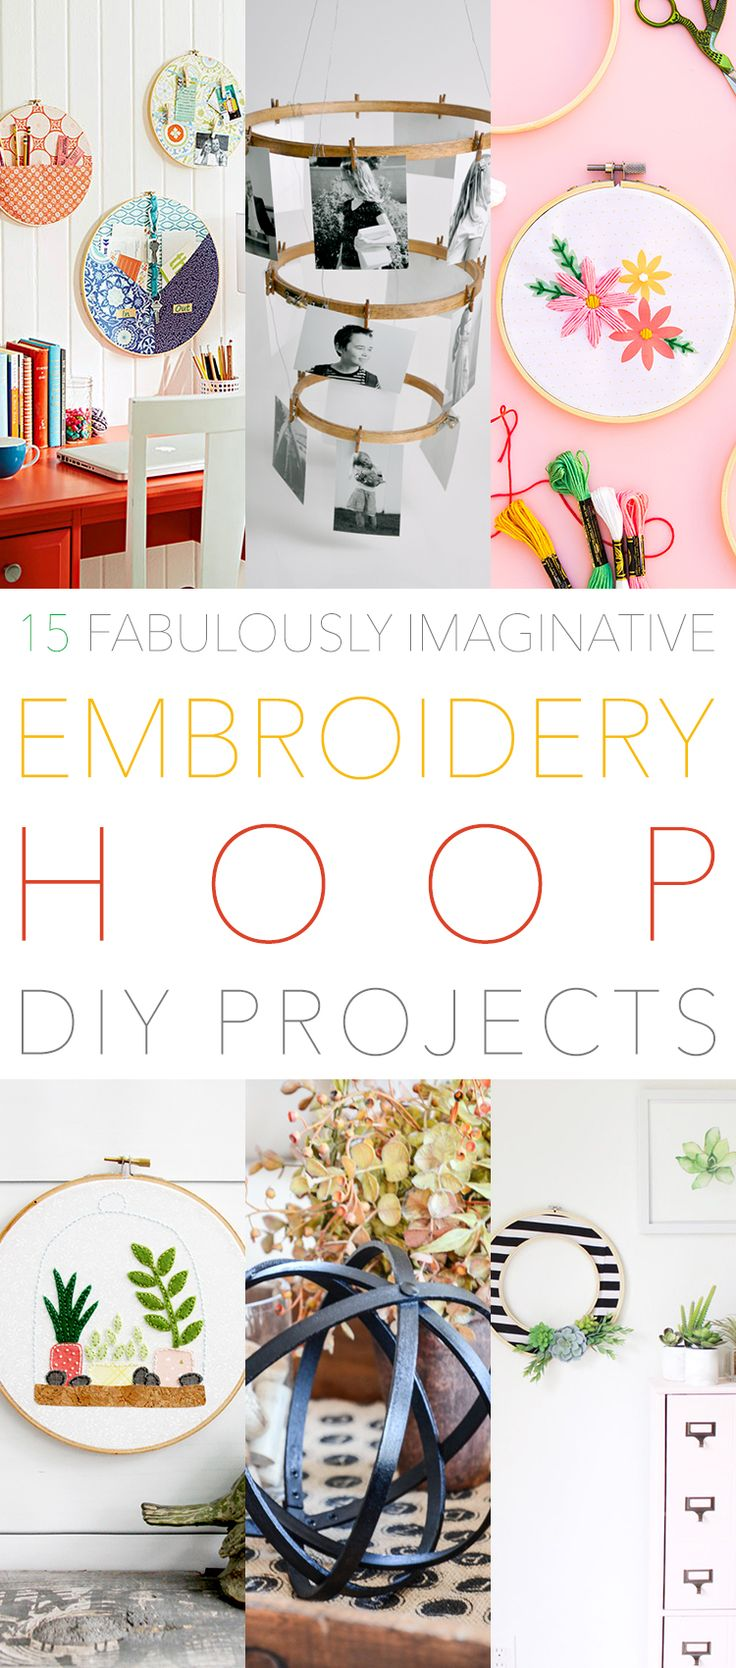 The simple Embroidery Hoop has a secret life…a life where it becomes something Special and Fresh! So we put together a new collection of 15 Fabulously Imaginative Embroidery Hoop DIY Projects. From Farmhouse Orbs to Pendant Lights…to Wall Art and more. You are going to love this incredible array of Creations. You are going to …